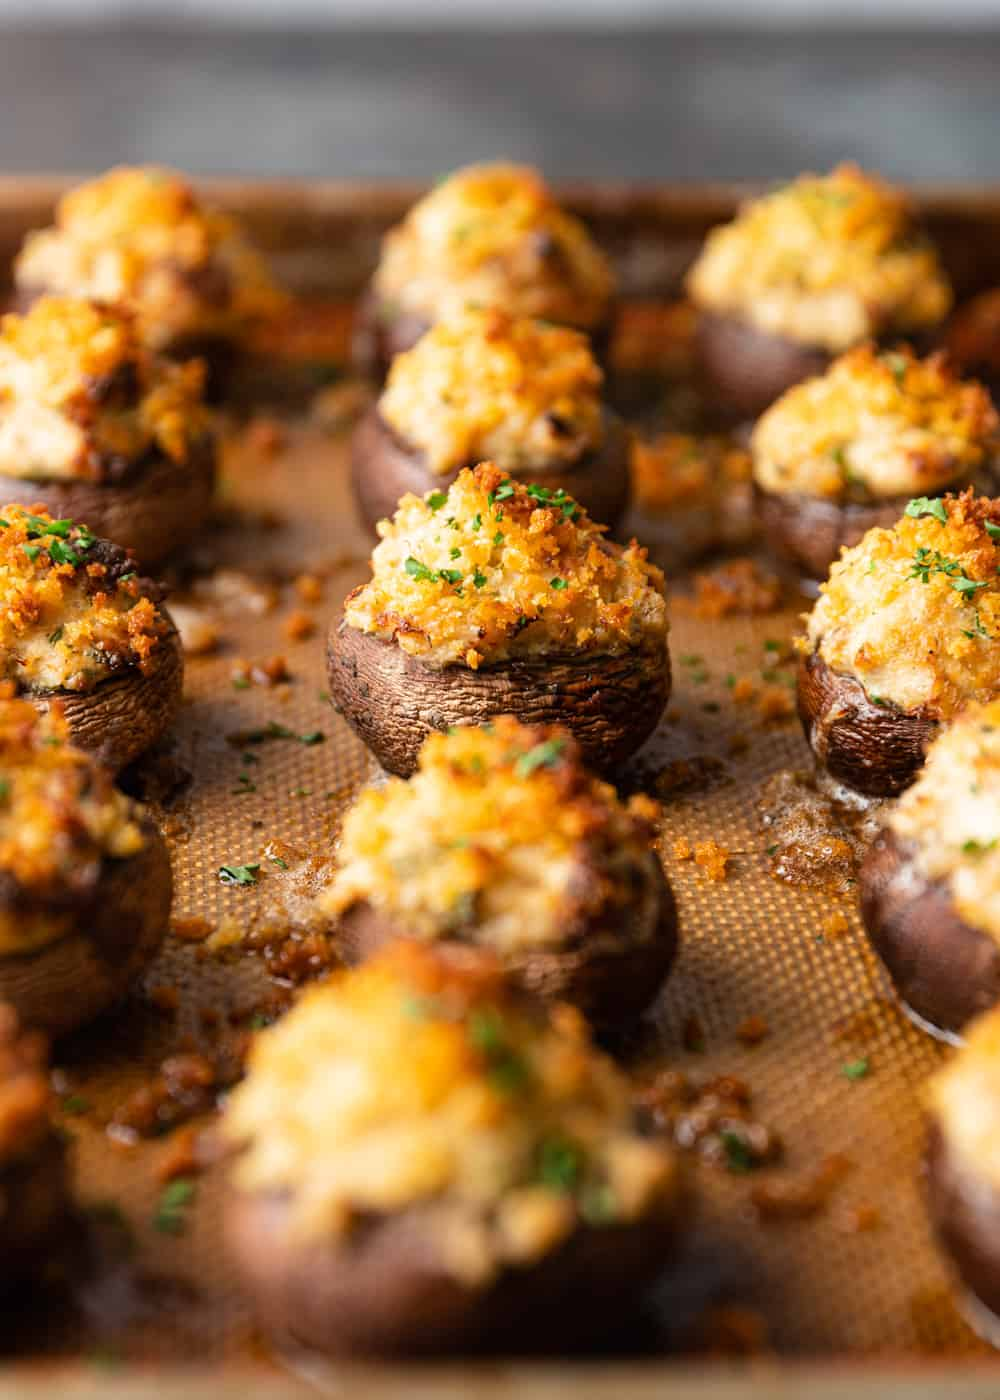 tray of baked Crab Stuffed Mushrooms